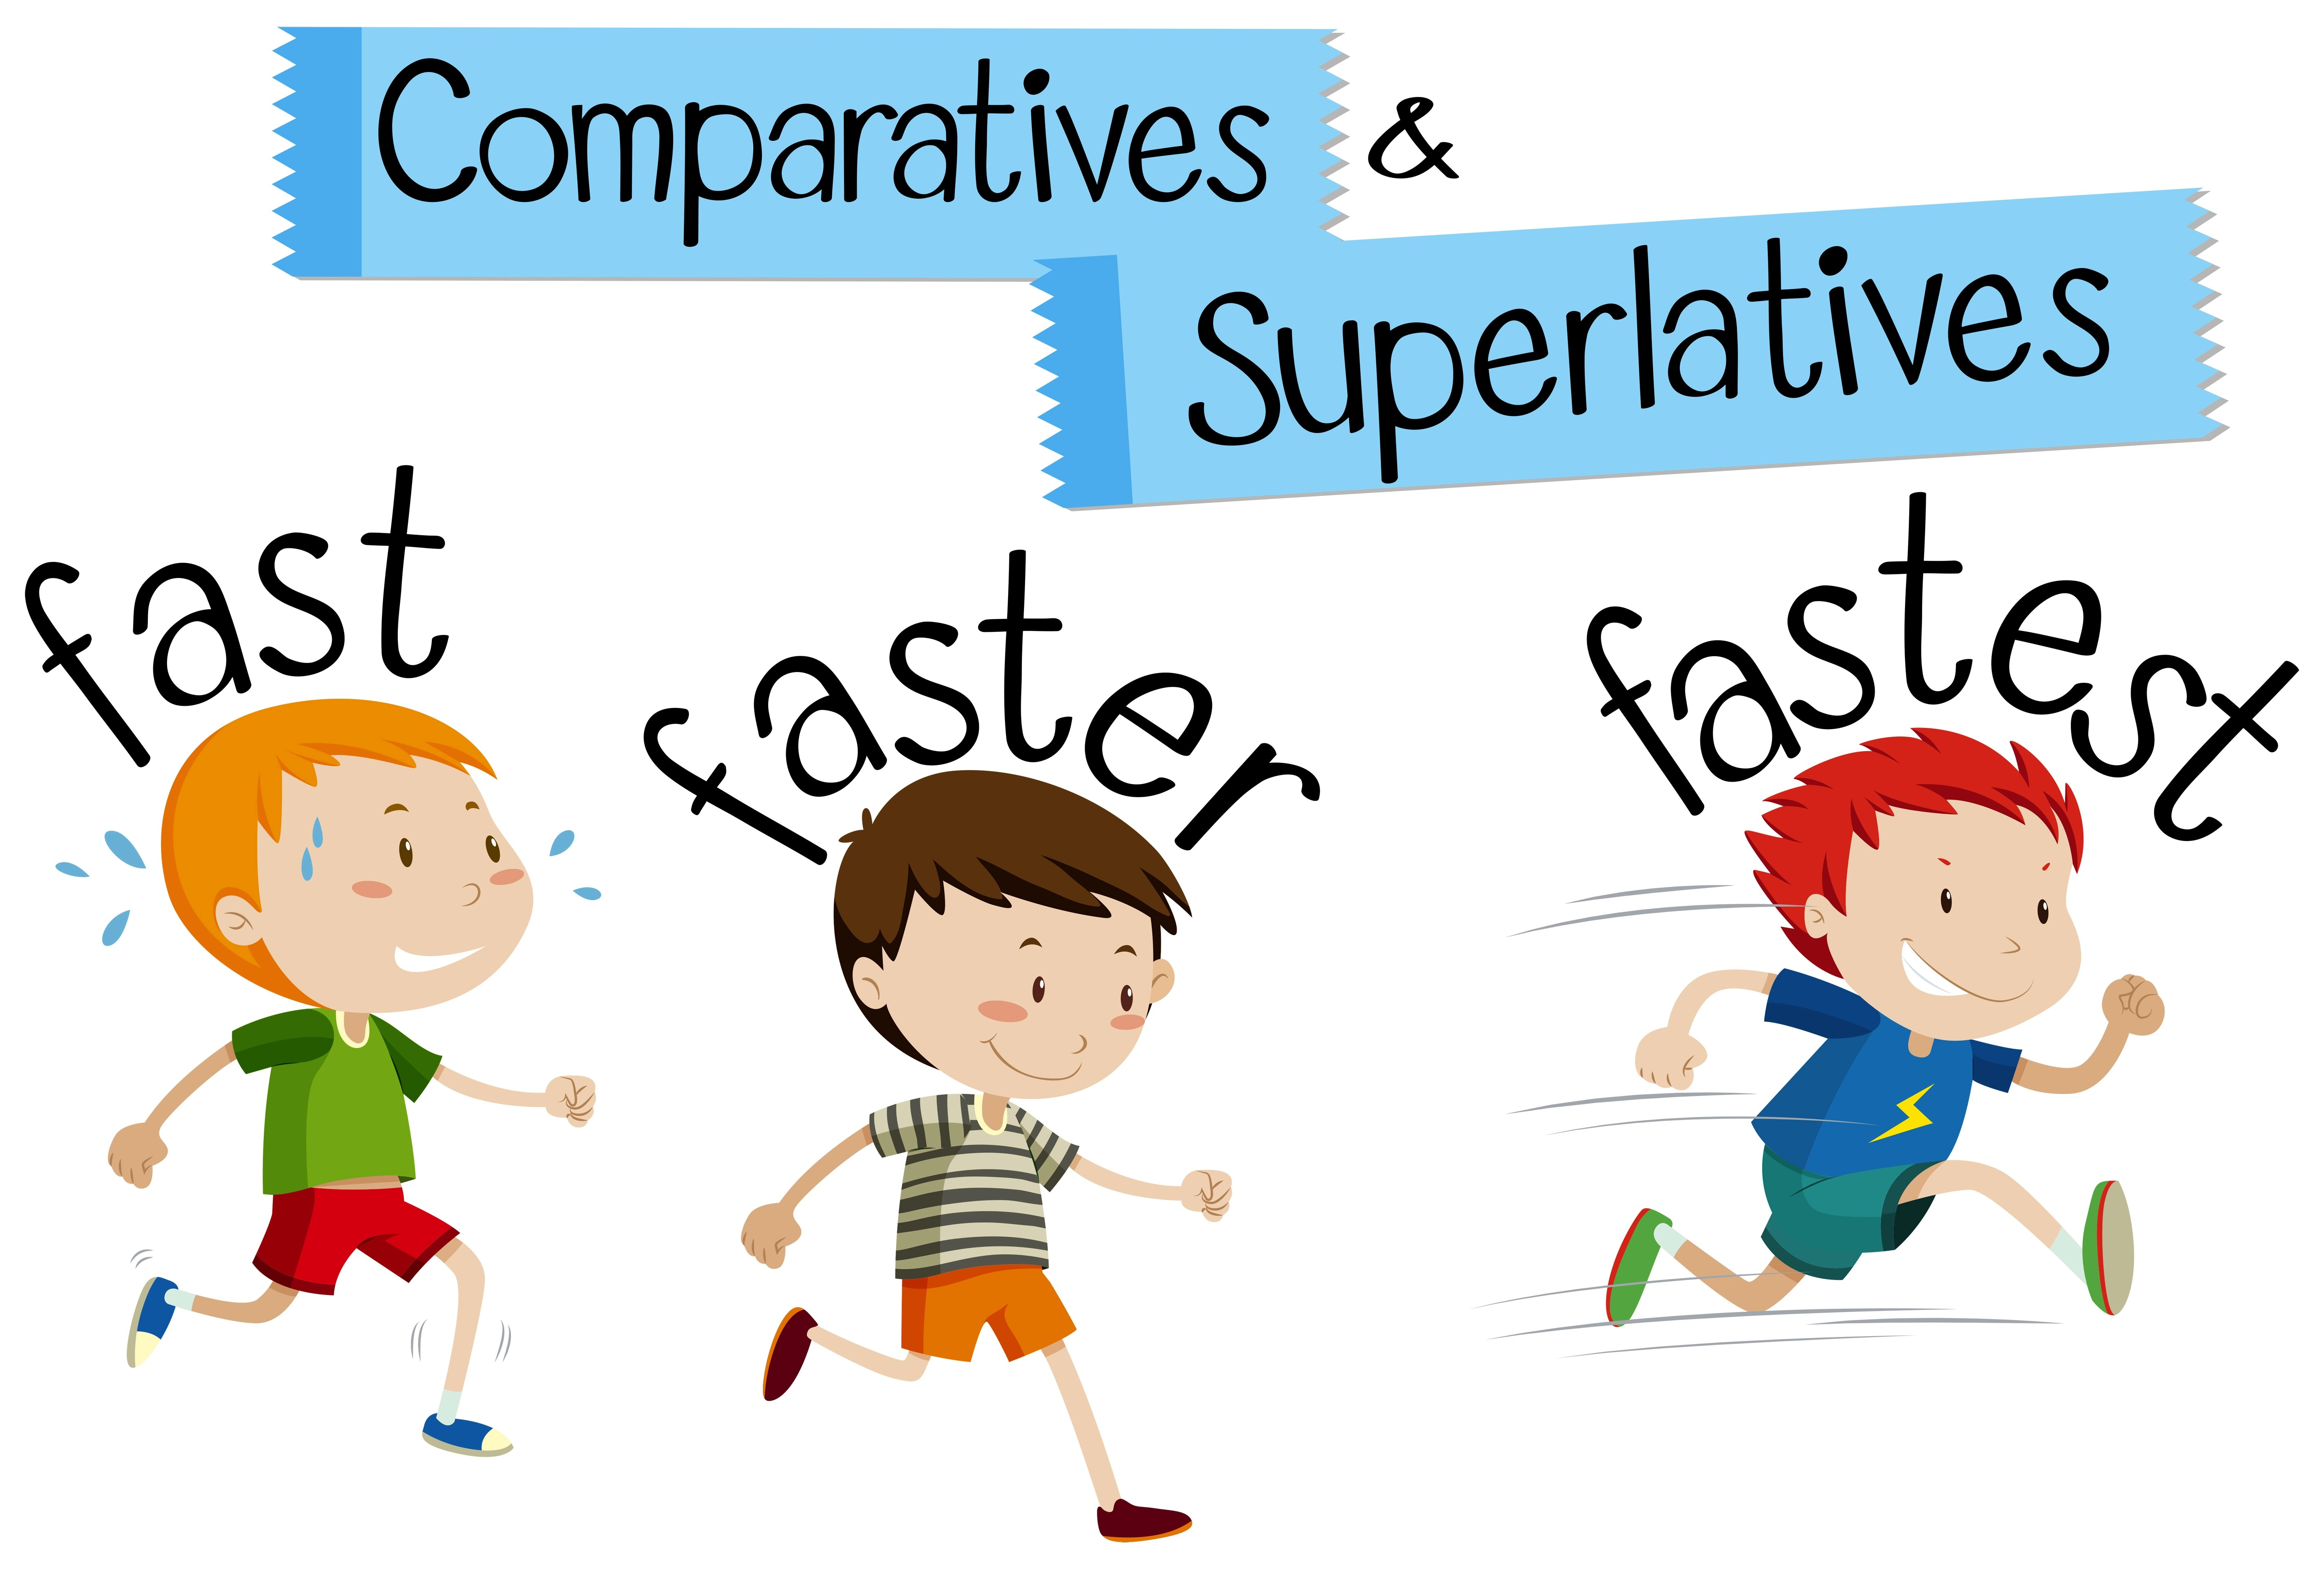 Comparatives And Superlatives Word For Fast